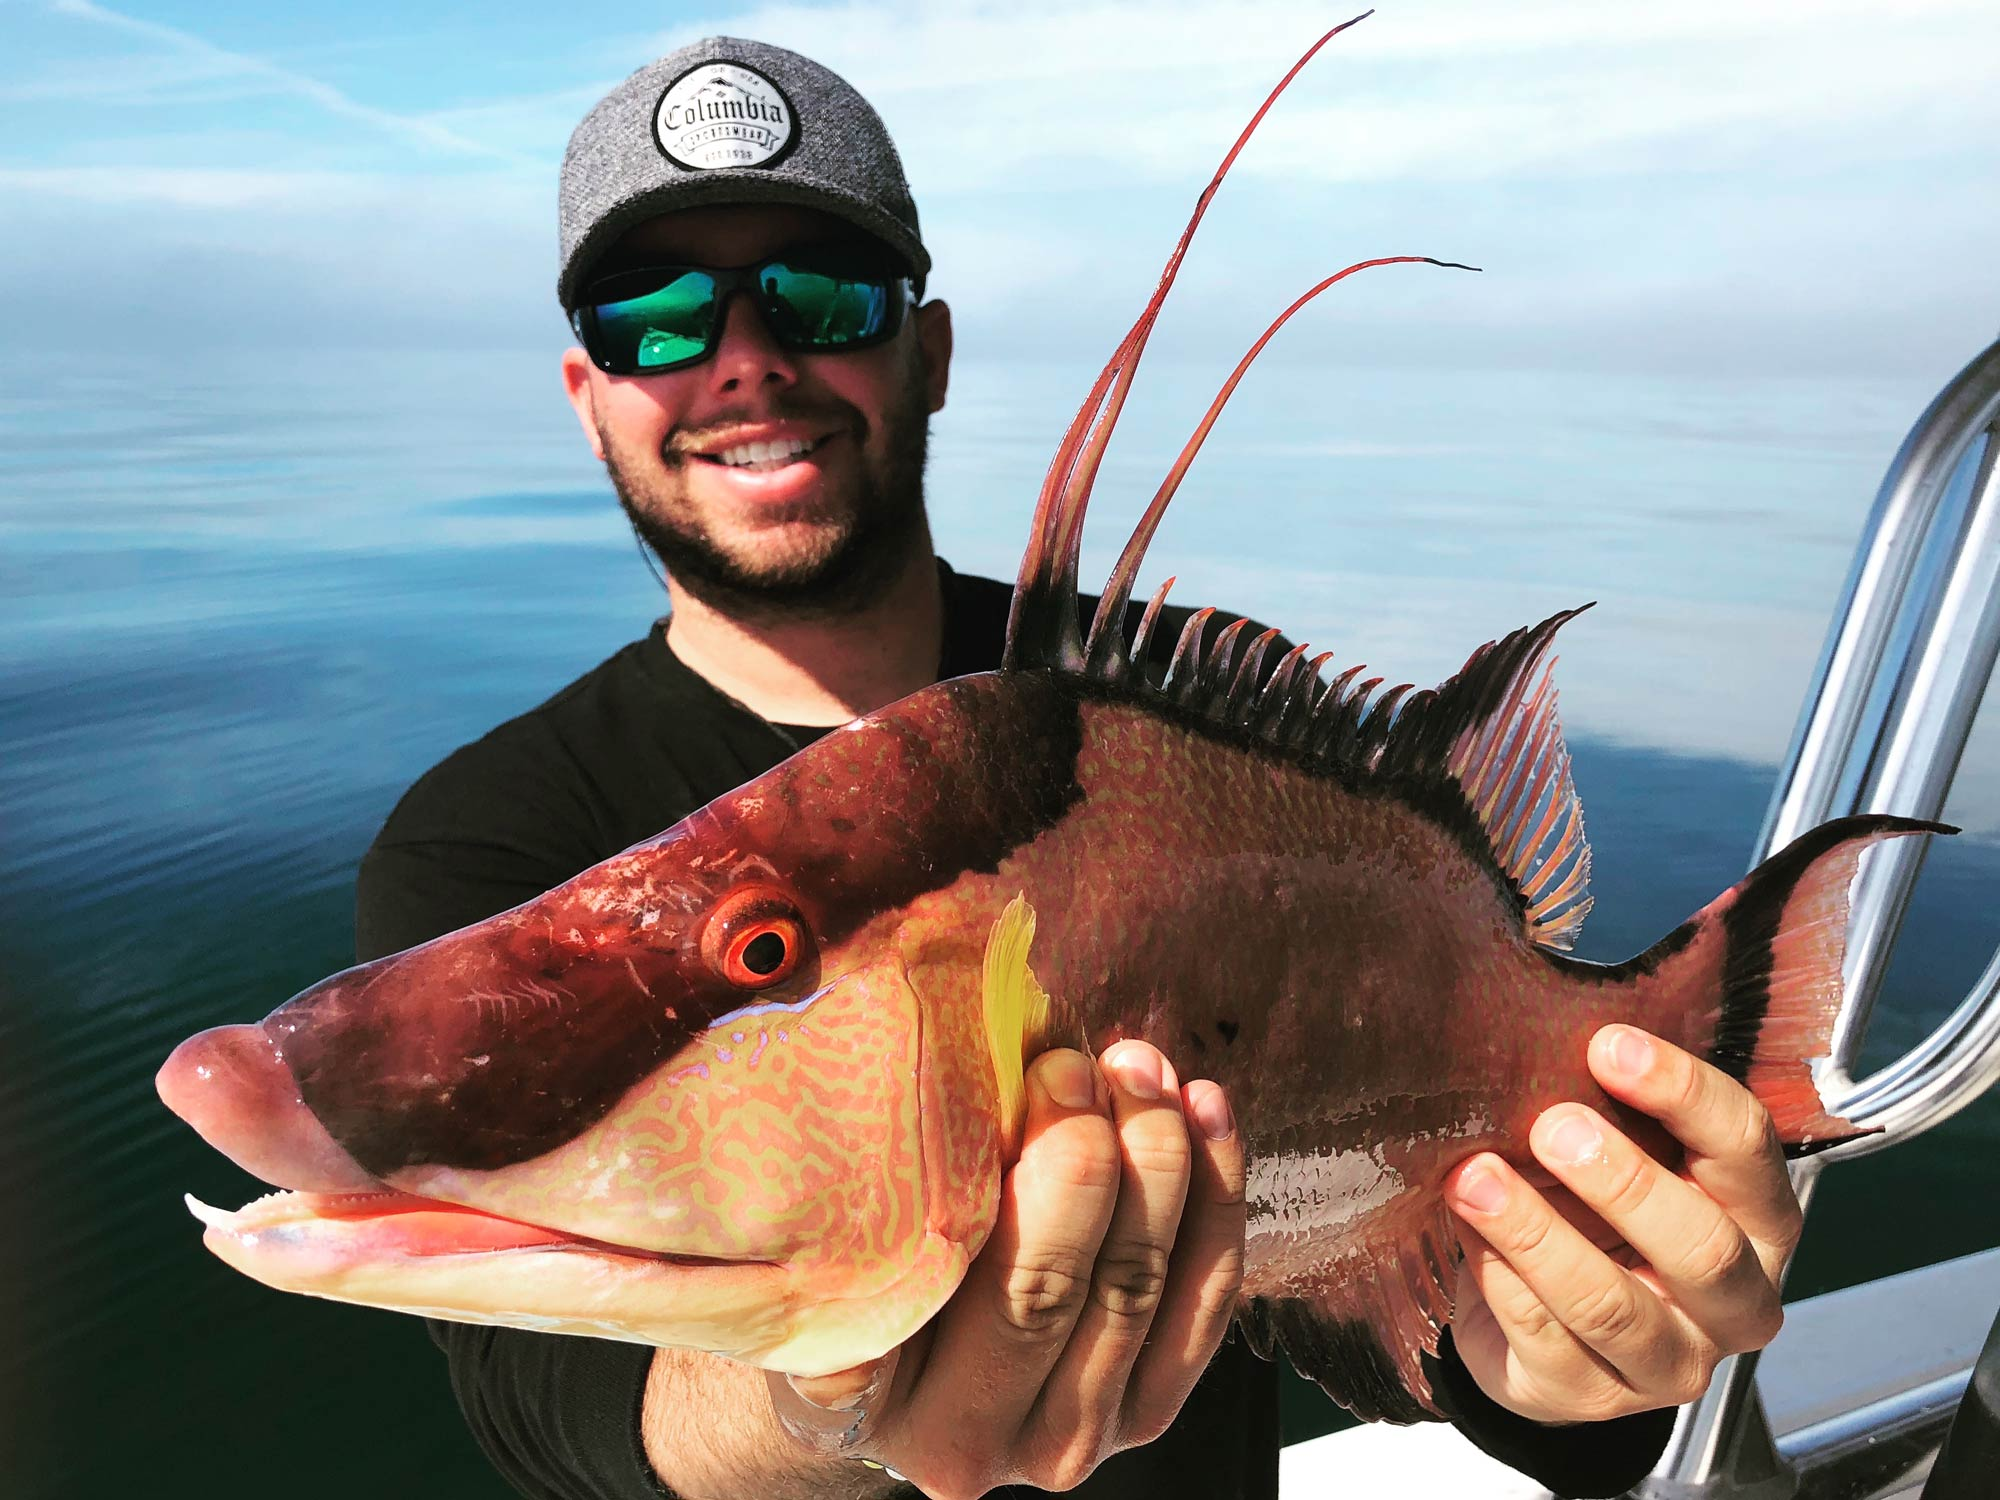 A smiling anglers holding a Hogfish on a boat